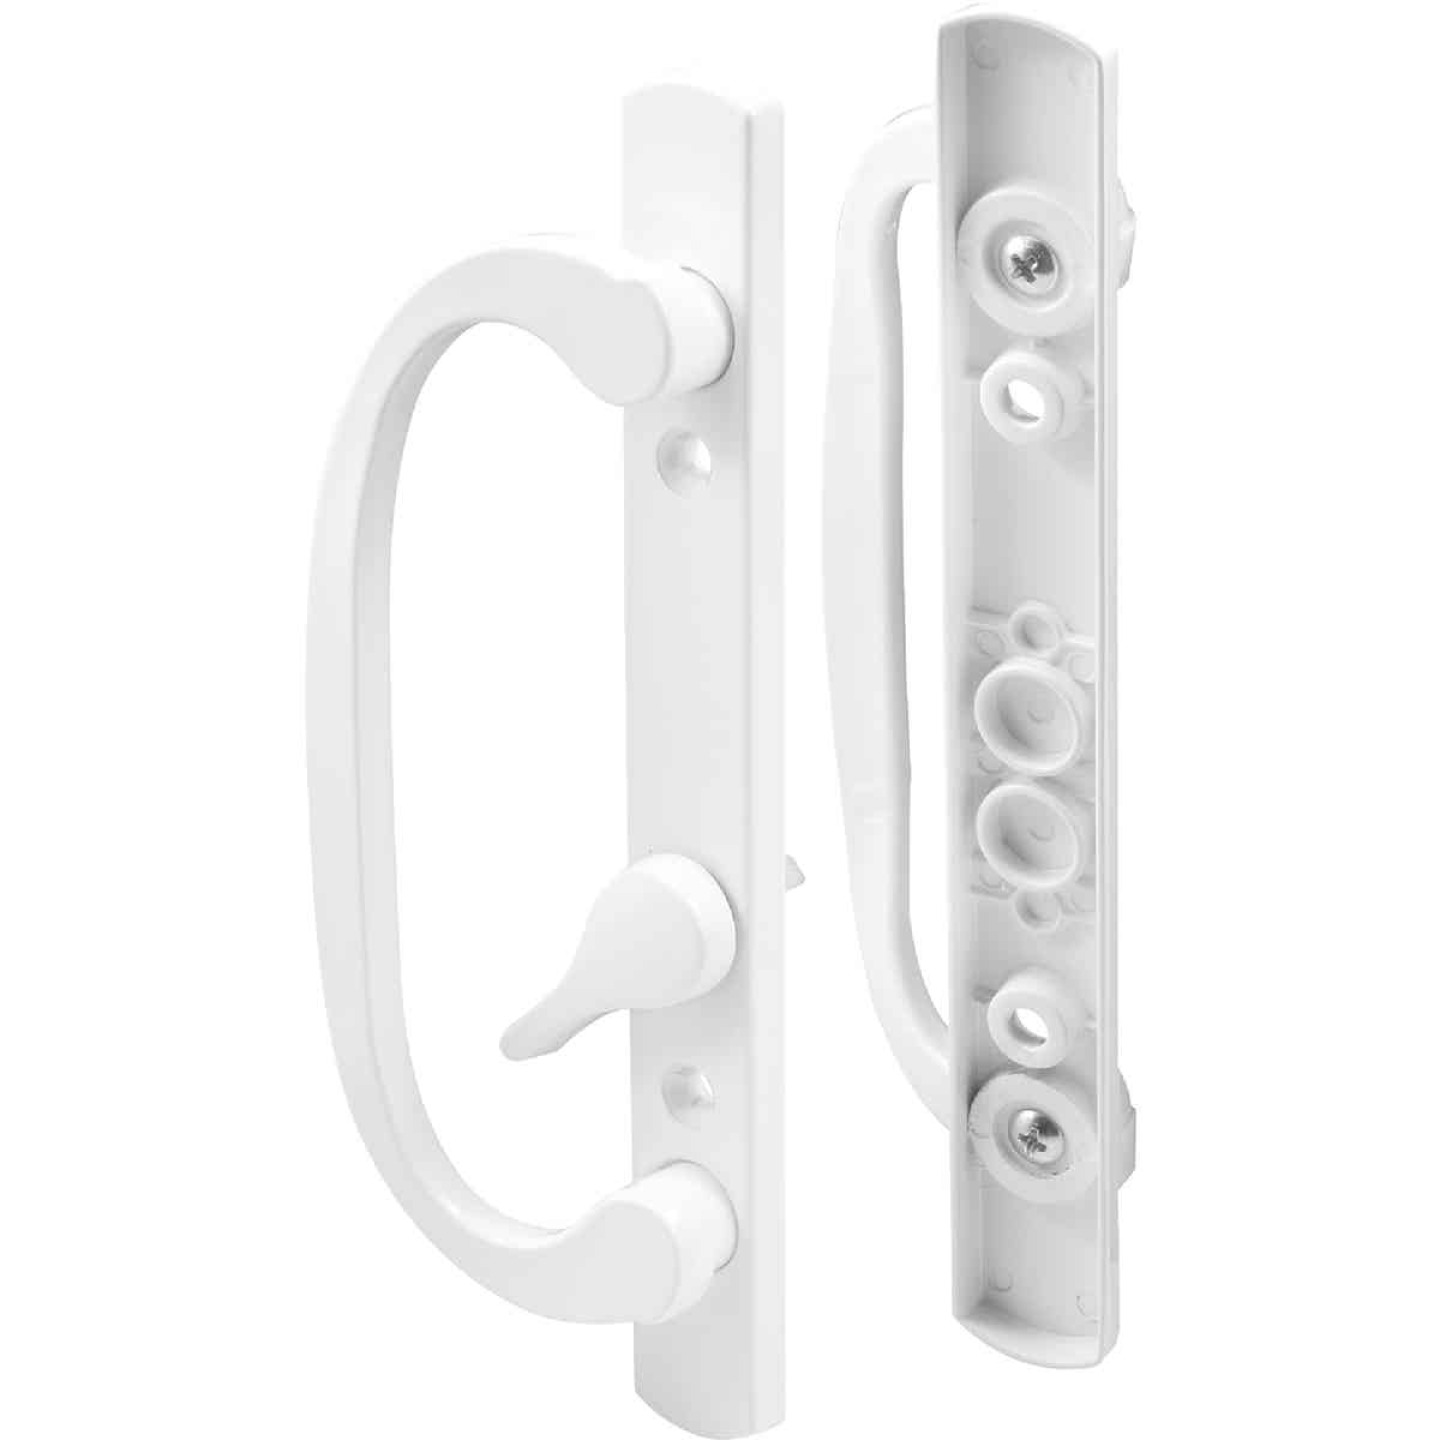 Prime-Line Mortise Style Sliding Door Handle Set With Offset Thumbturn Image 1